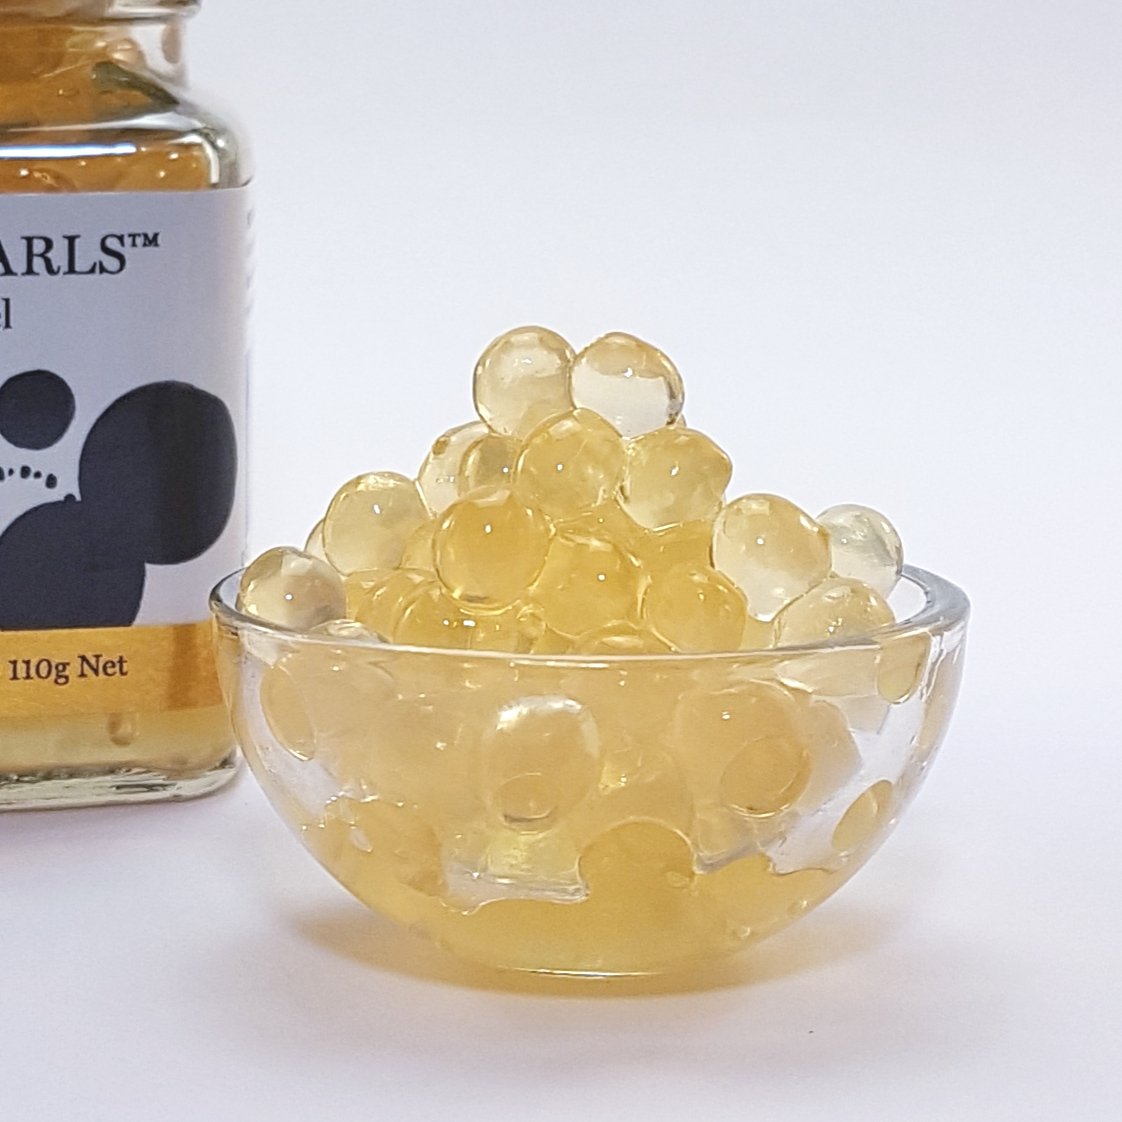 Salted Caramel Flavour Pearls Product in dish